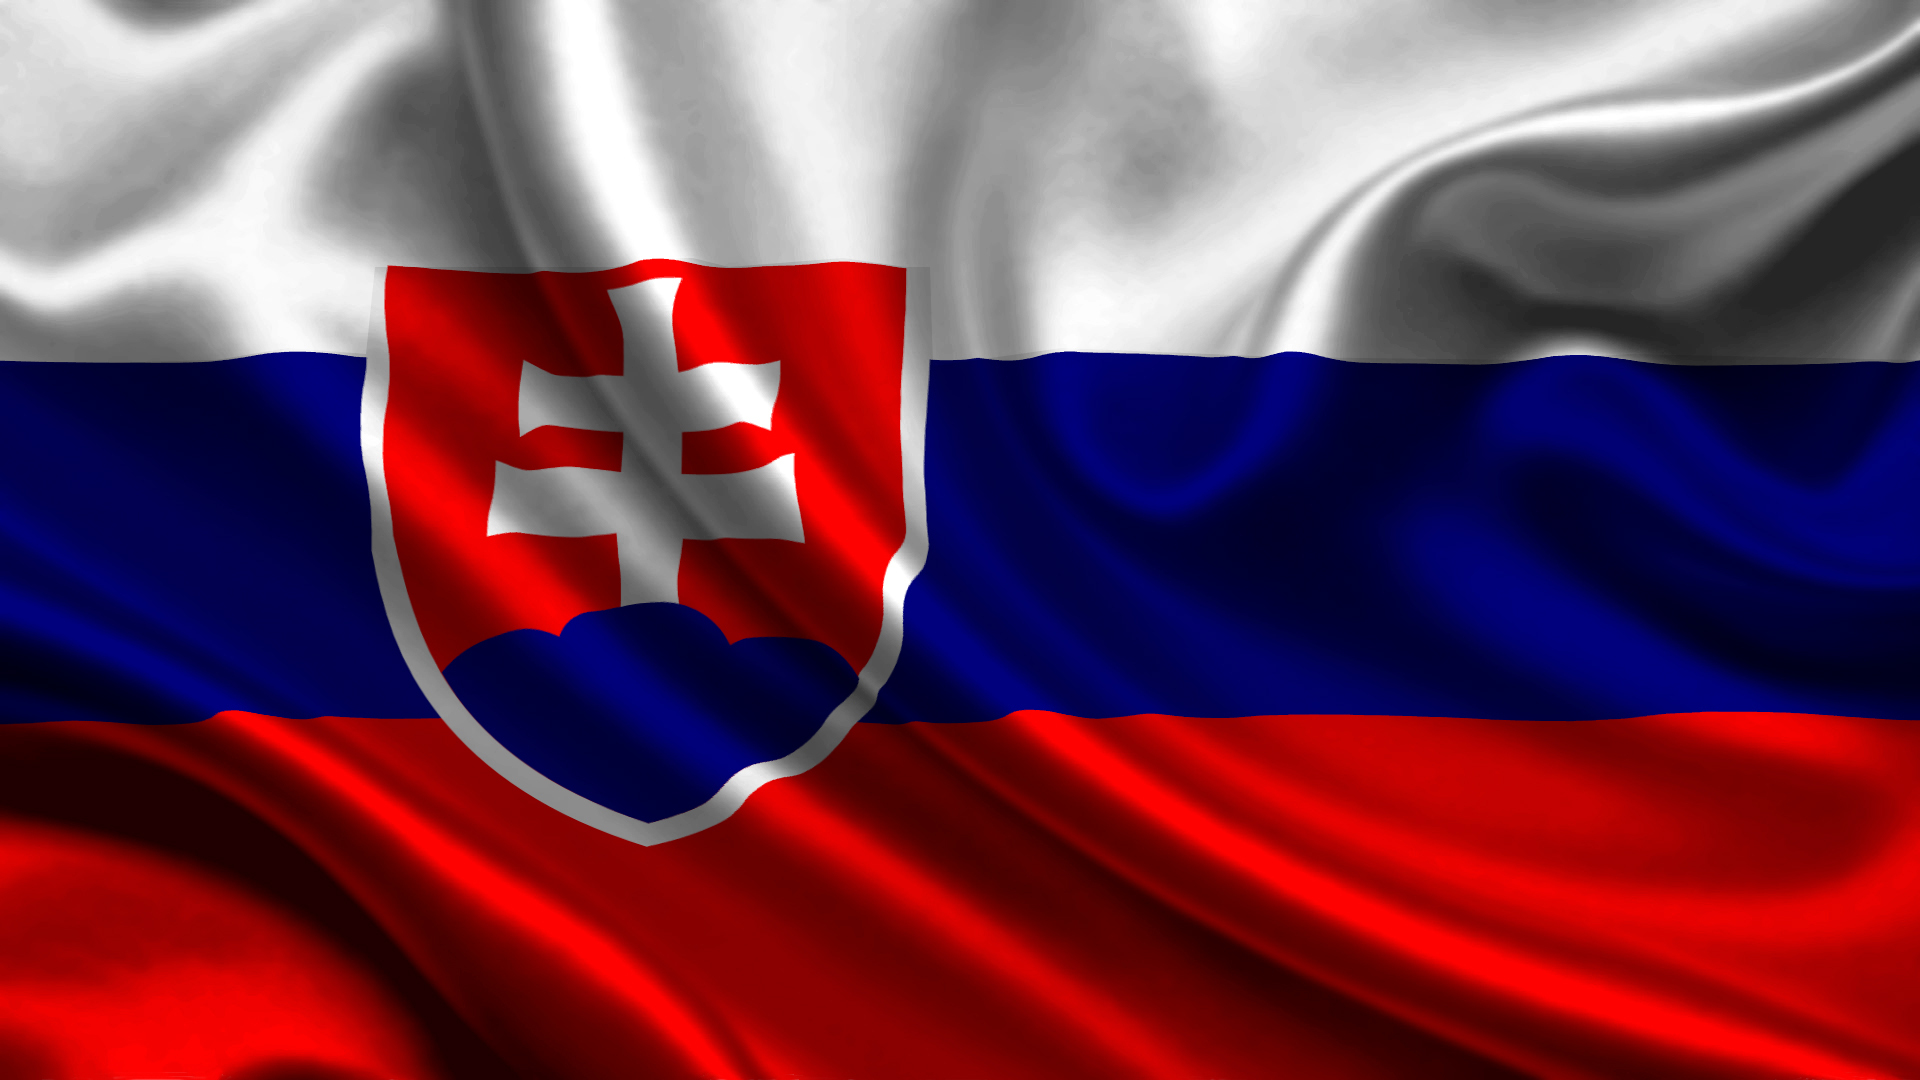 flag Slovakia wallpapers and images   wallpapers pictures photos 1920x1080